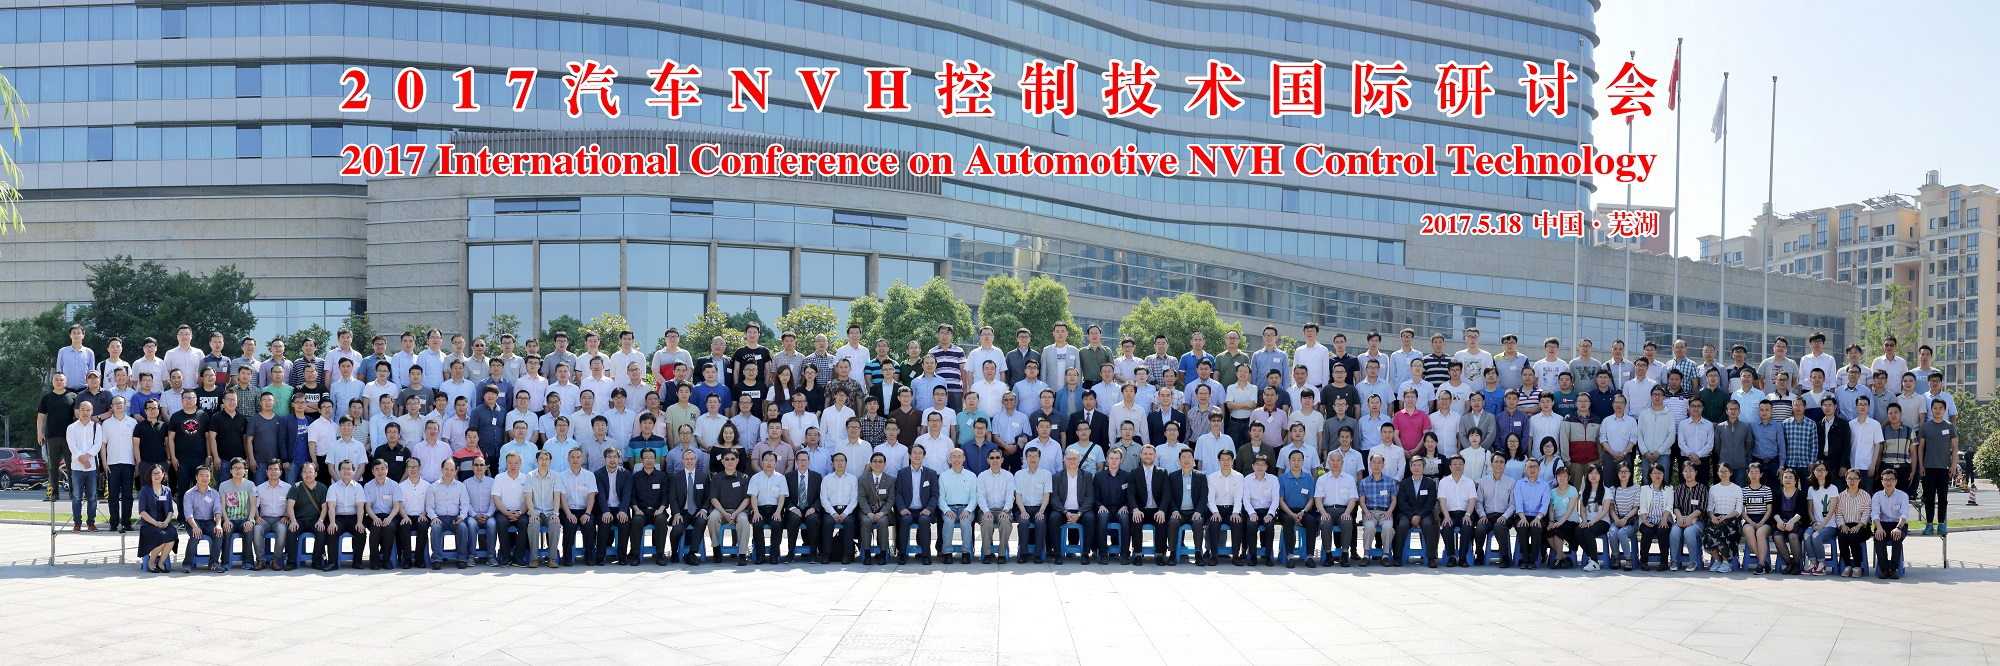 2017 International Conference on Automotive NVH Control Technology